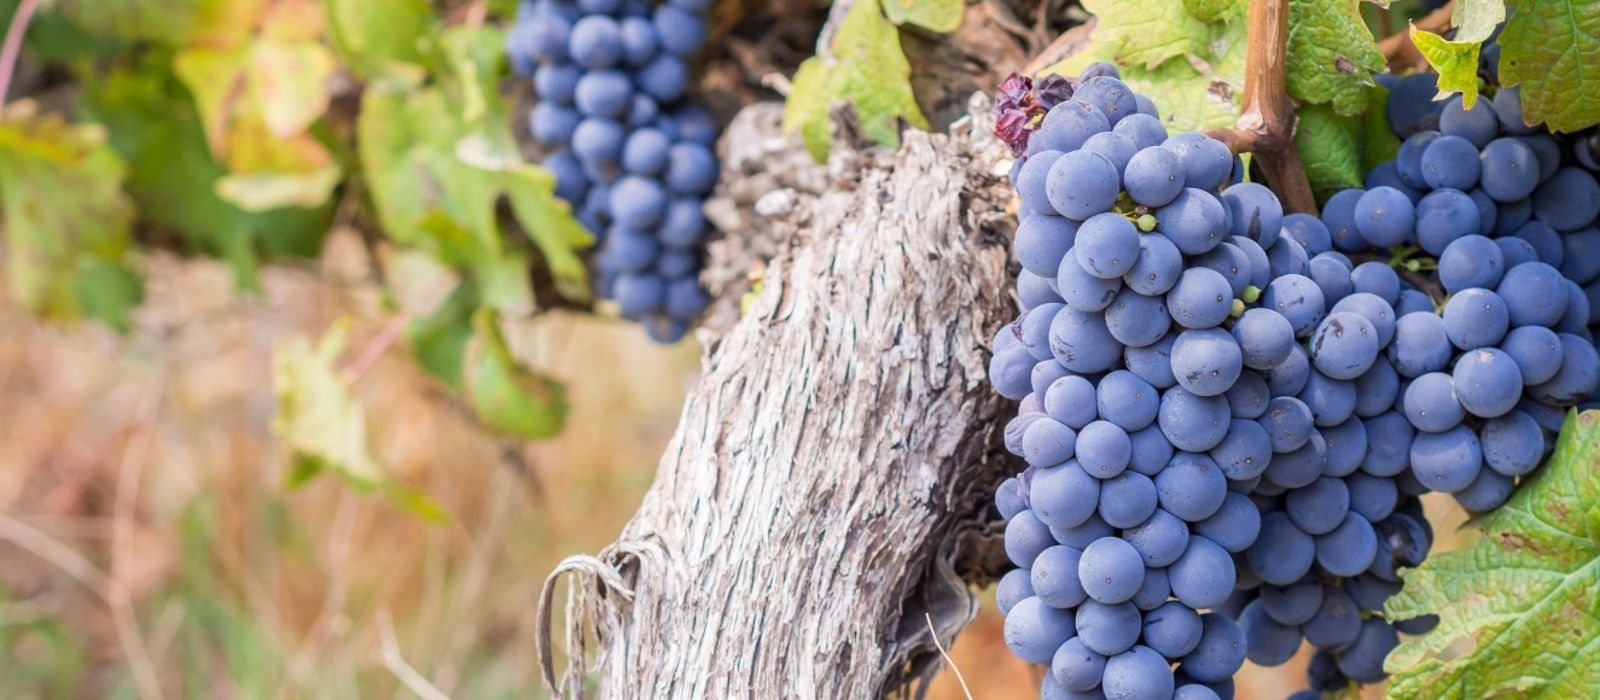 Dine with South Africa's Winemakers Tour Trip 2